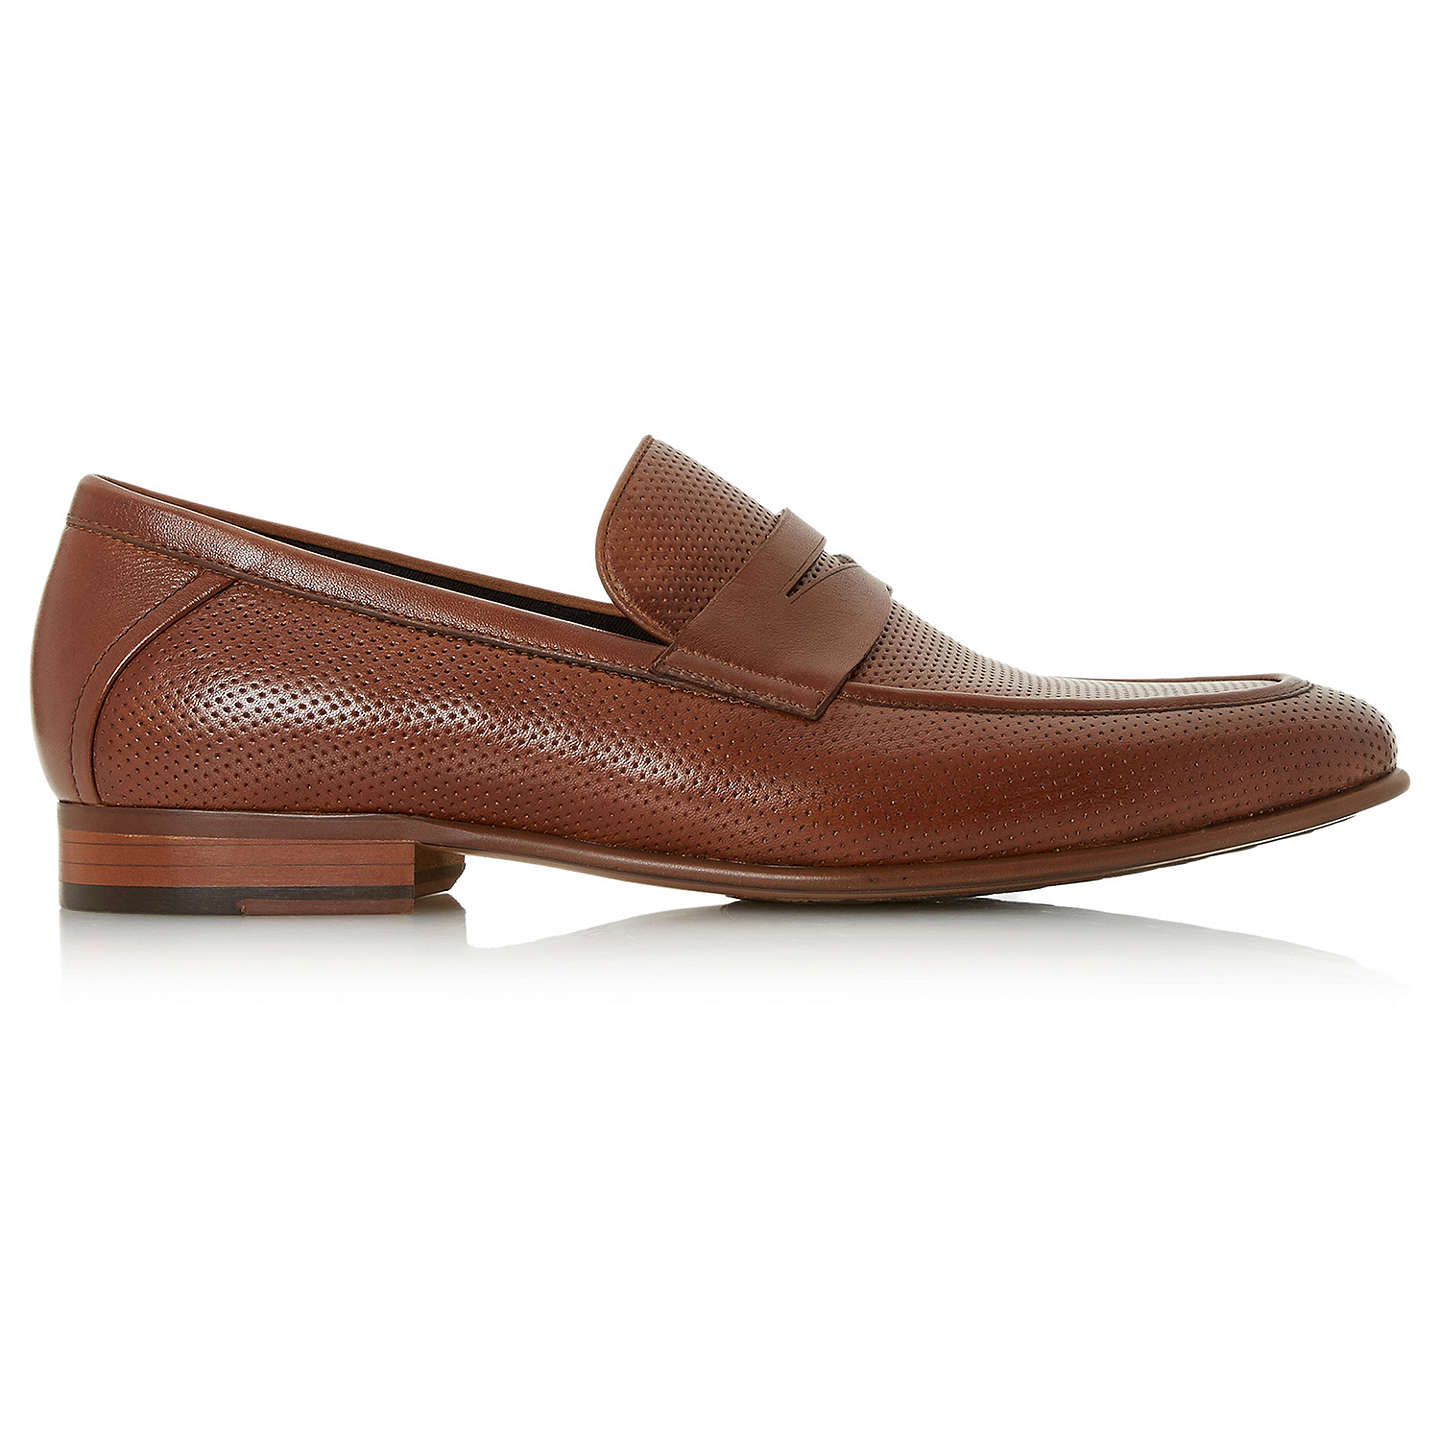 BuyDune Palazzo Penny Loafers, Tan, 6 Online at johnlewis.com